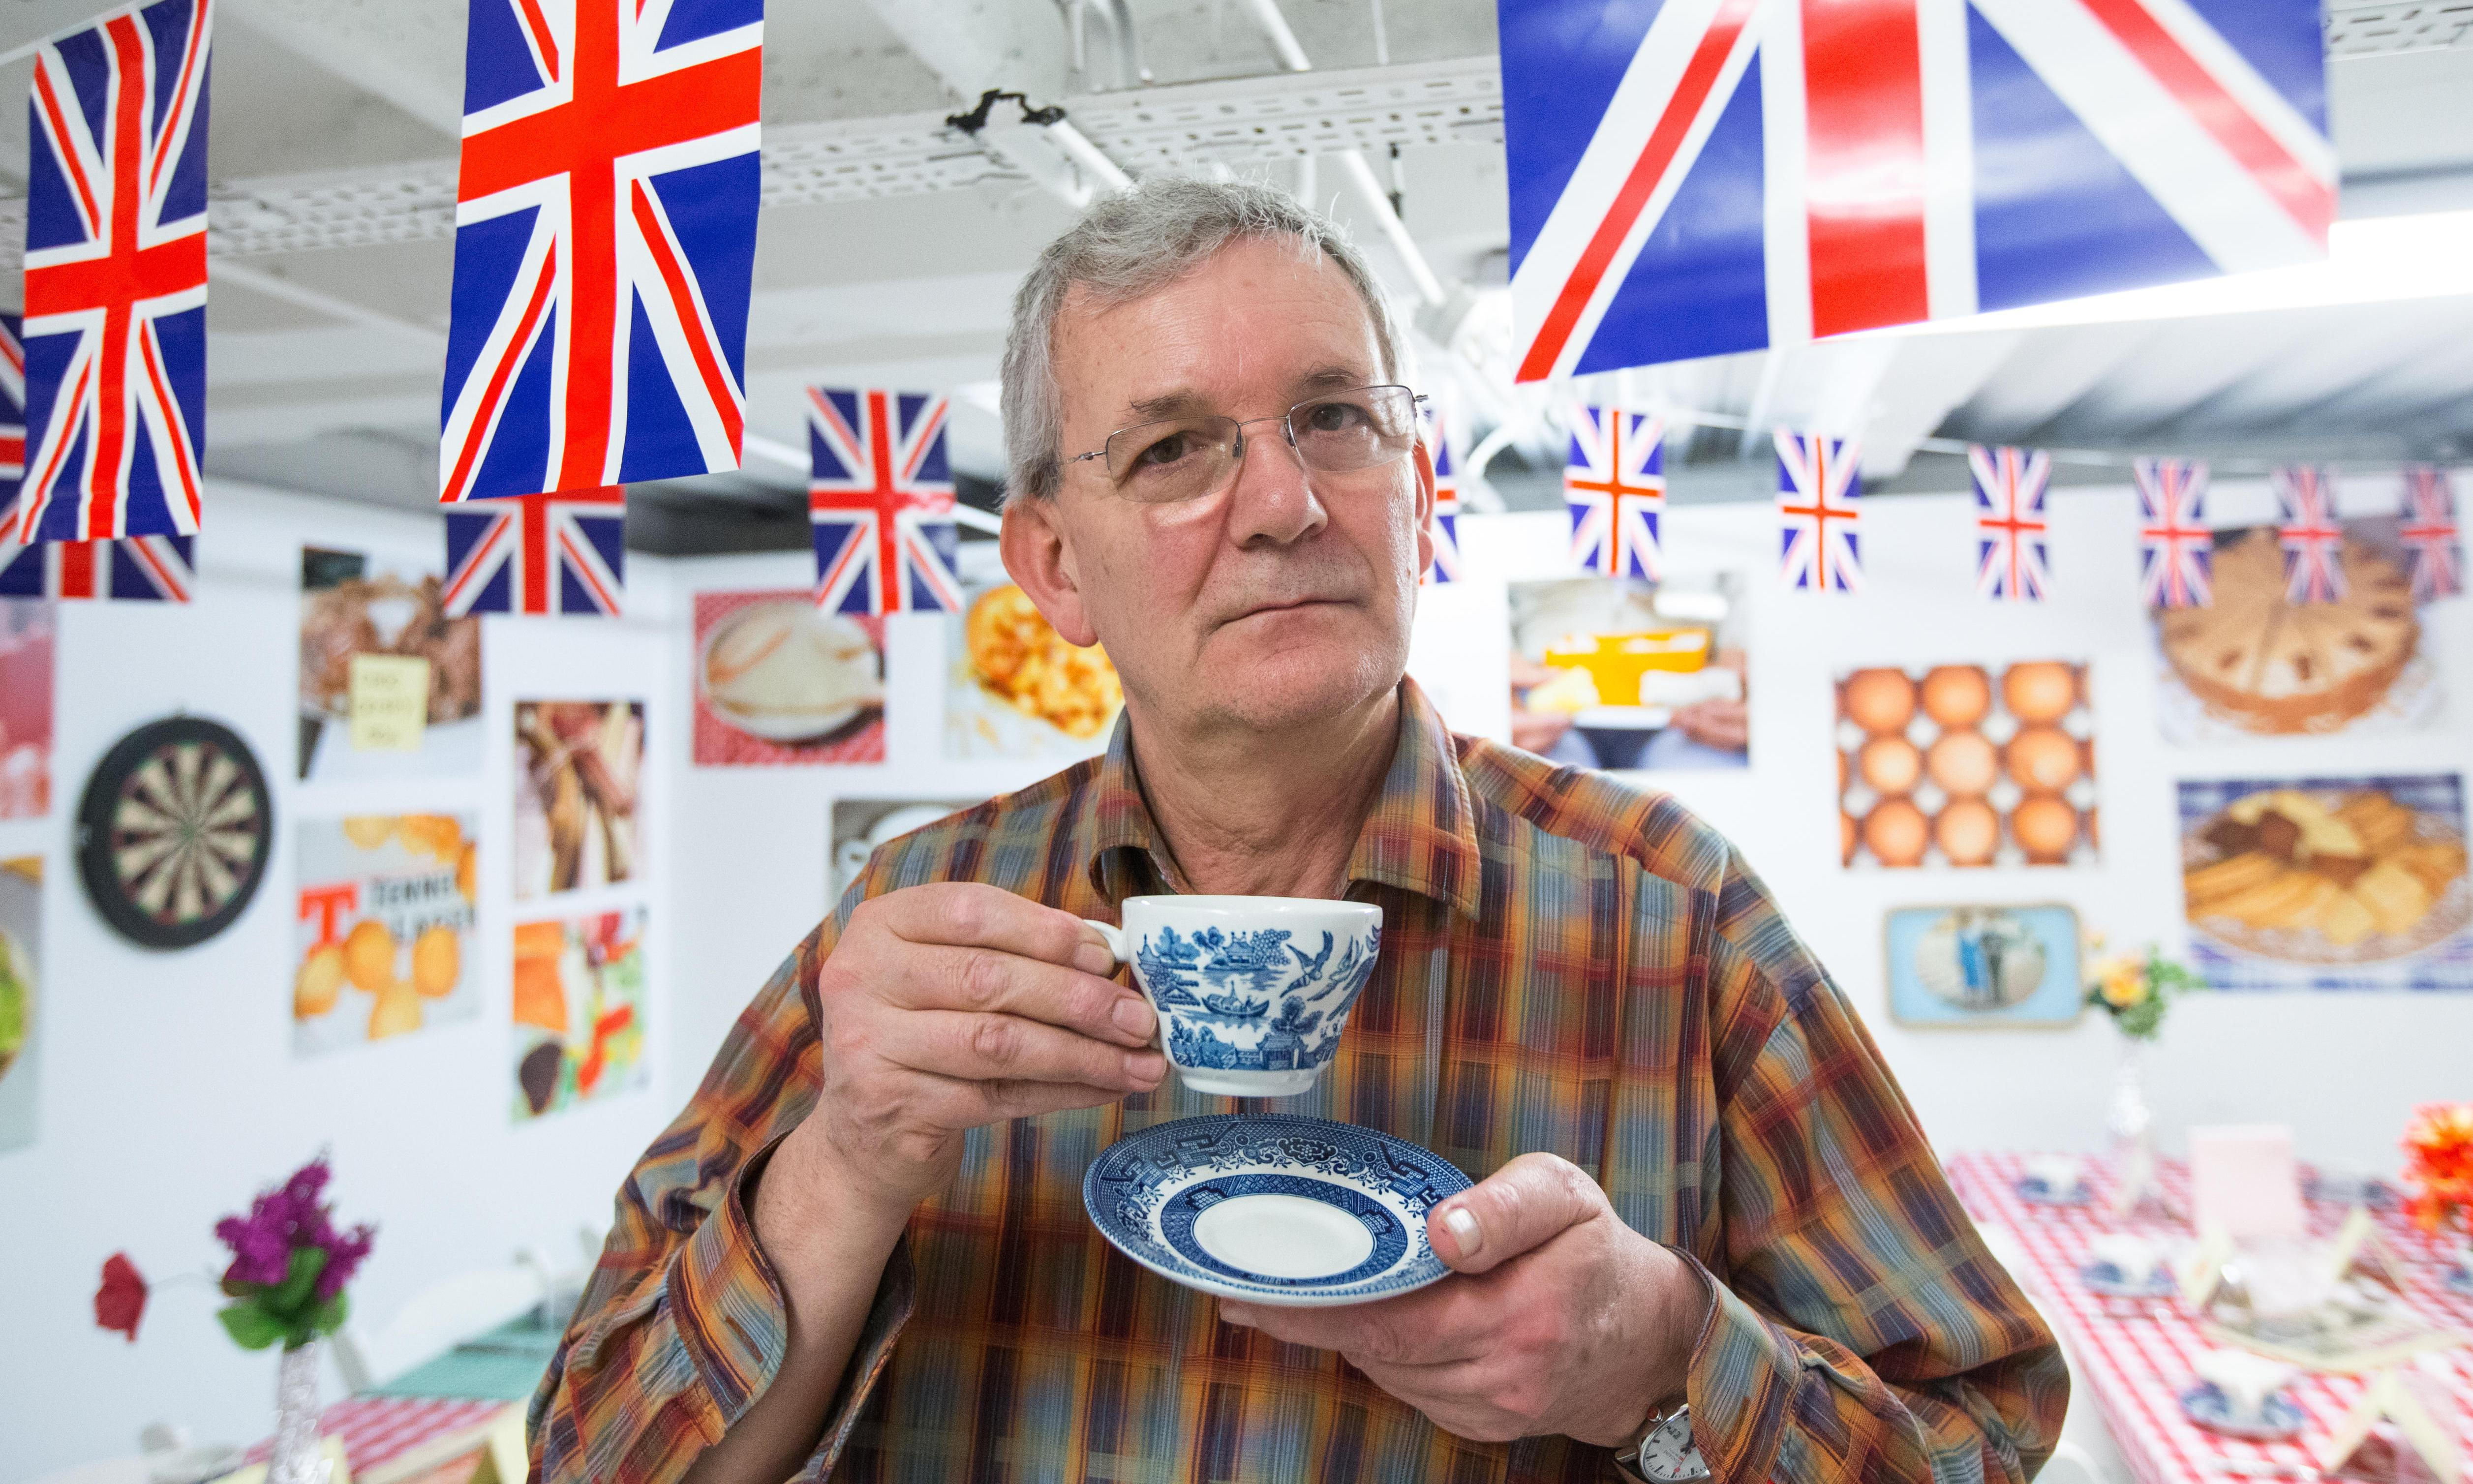 Martin Parr: 'There's no time for being intimidated'